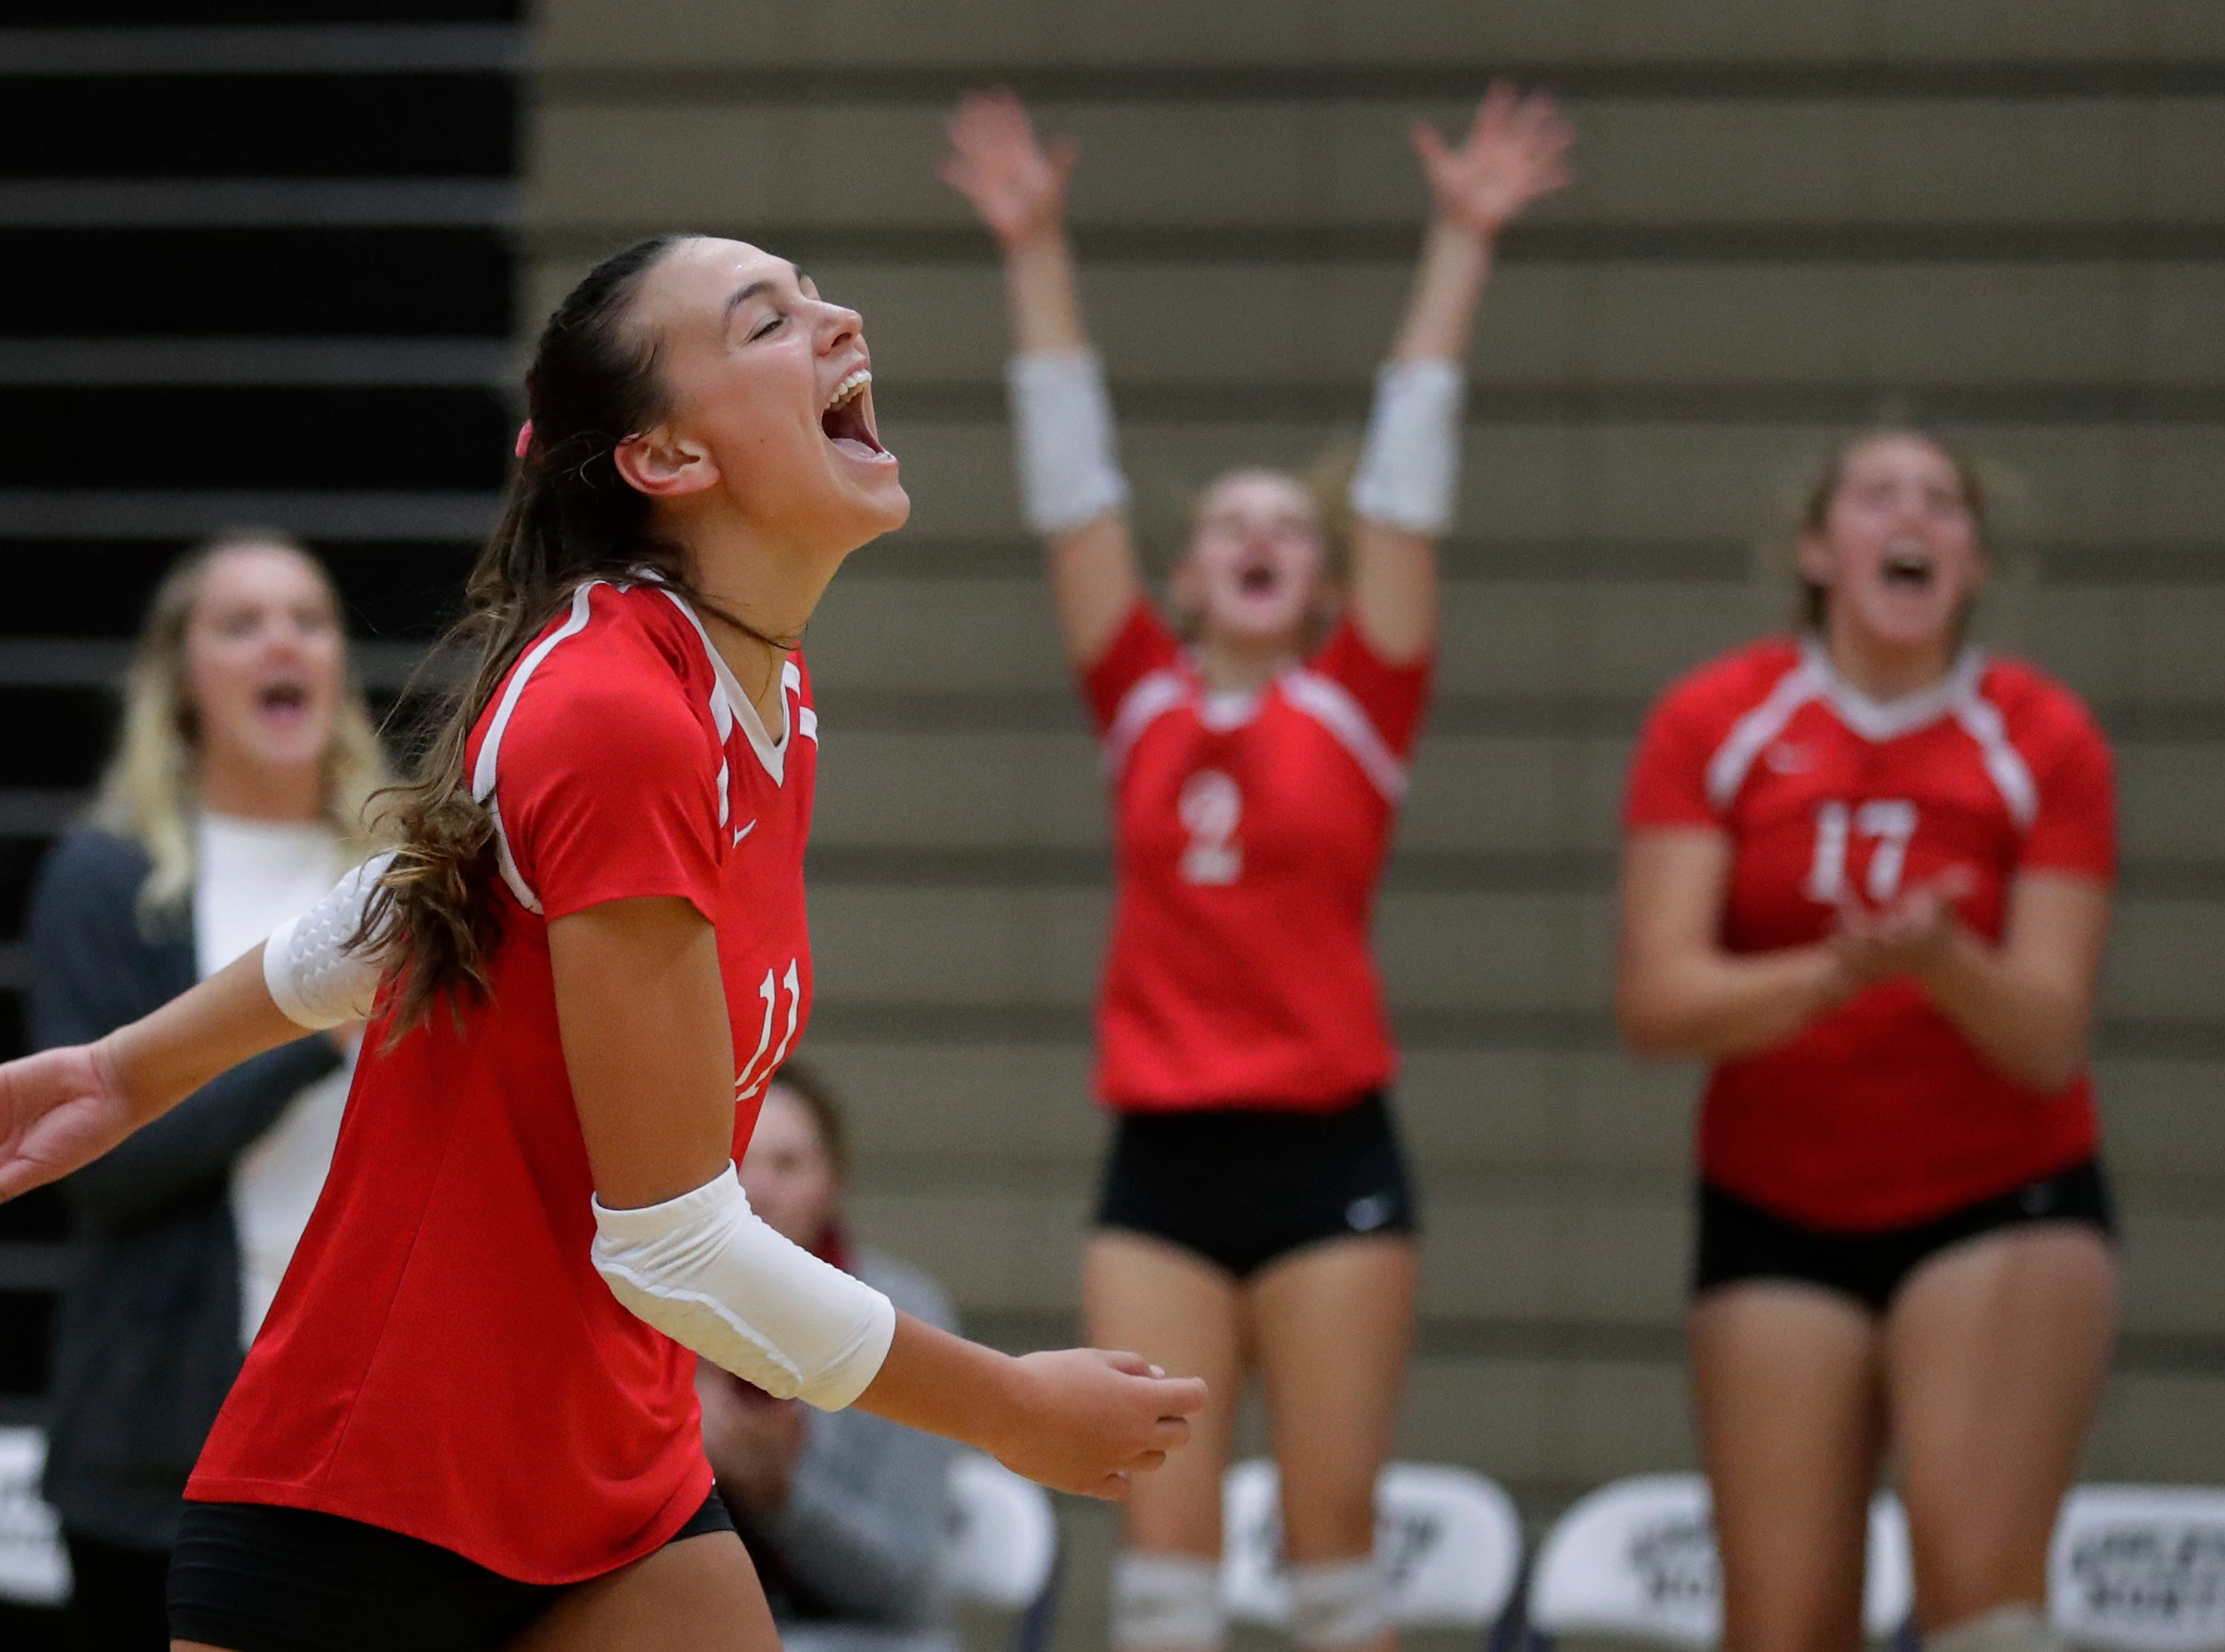 Kimberly High School's Maggie Cartwright (11) celebrates winning a point against Appleton North High School during their girls volleyball match Thursday, Sept. 27, 2018, in Appleton, Wis. 